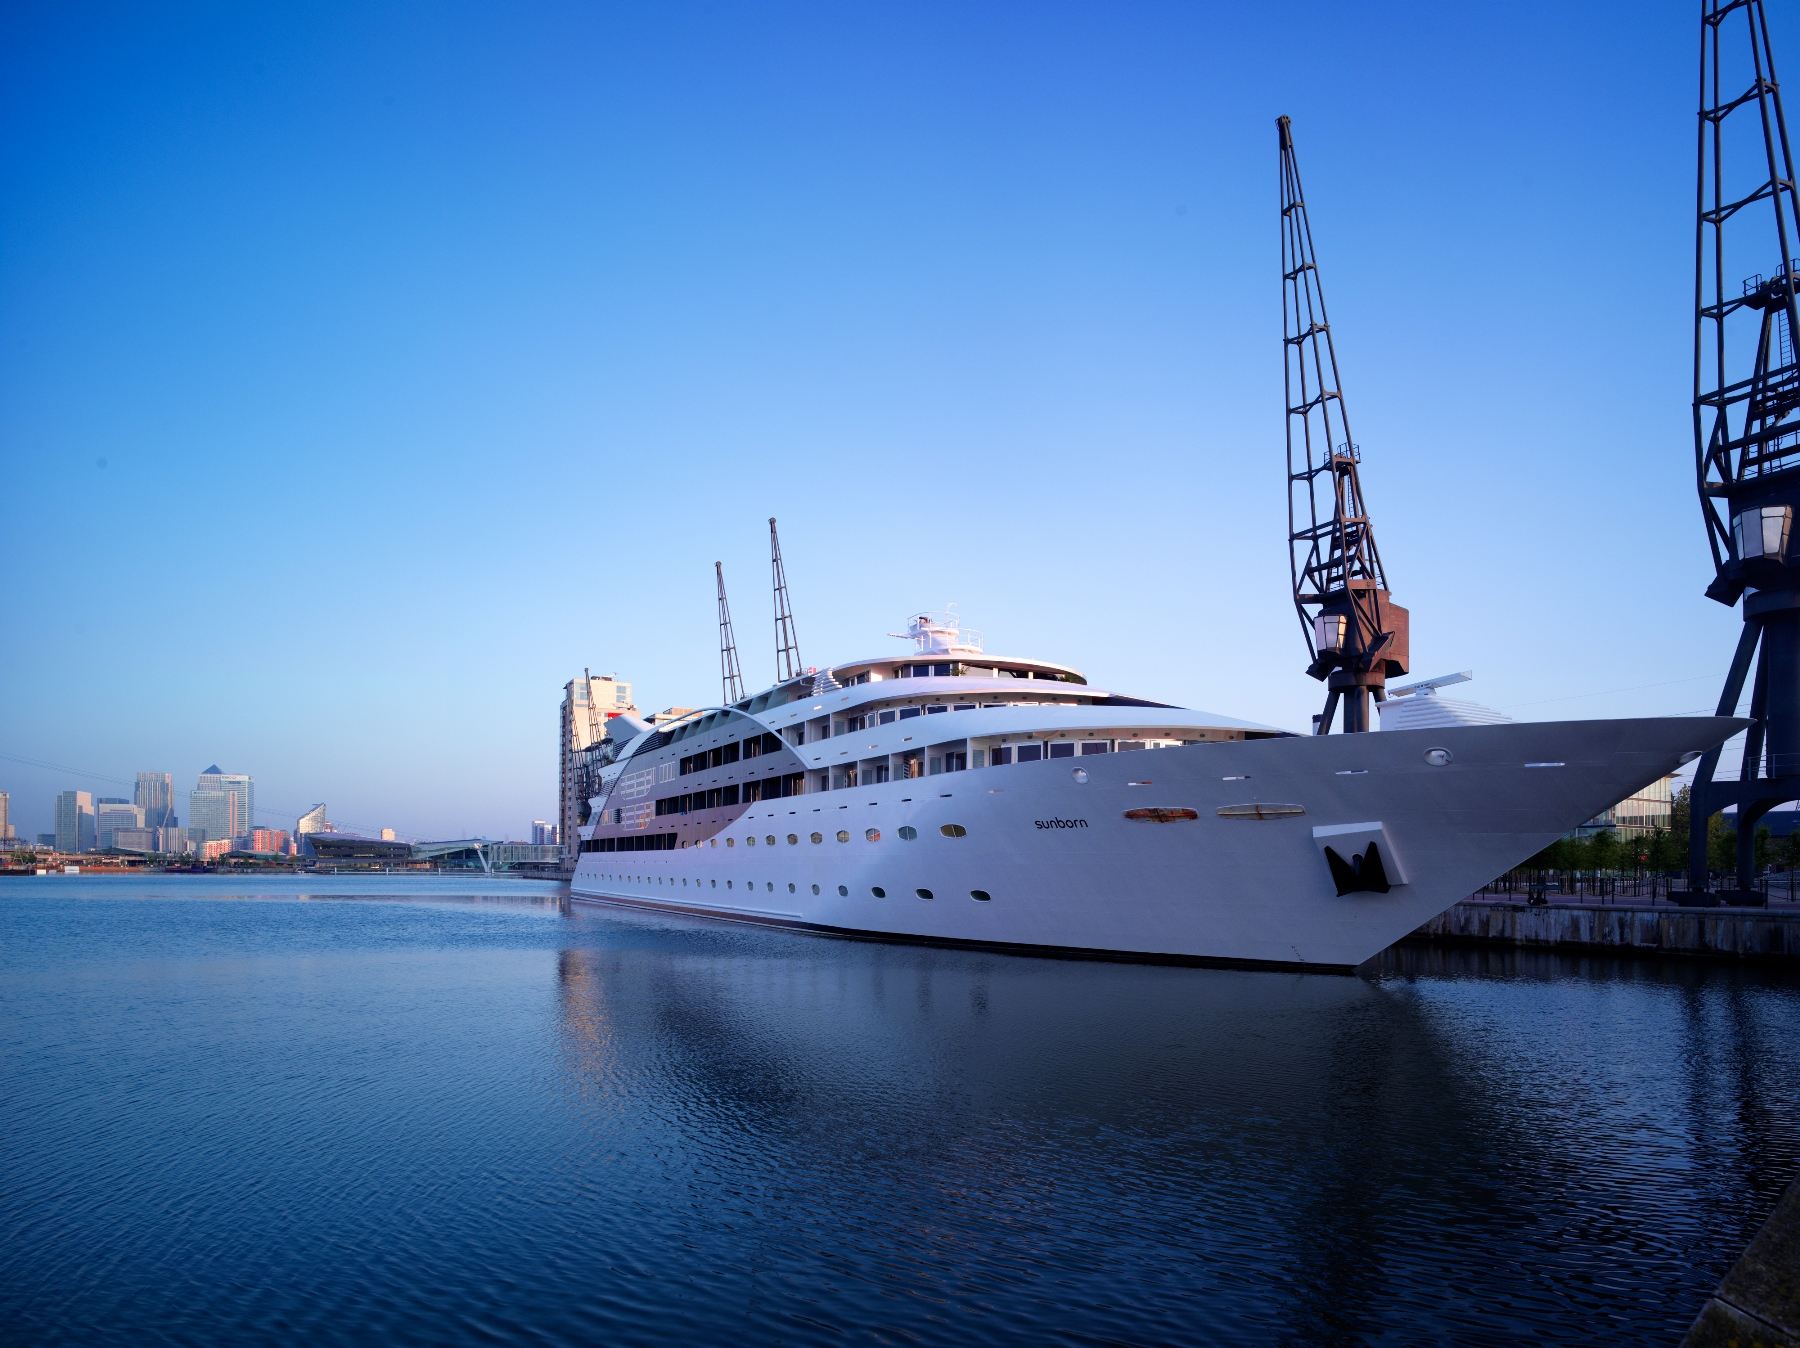 NEWS: SUNBORN LONDON YACHT HOTEL